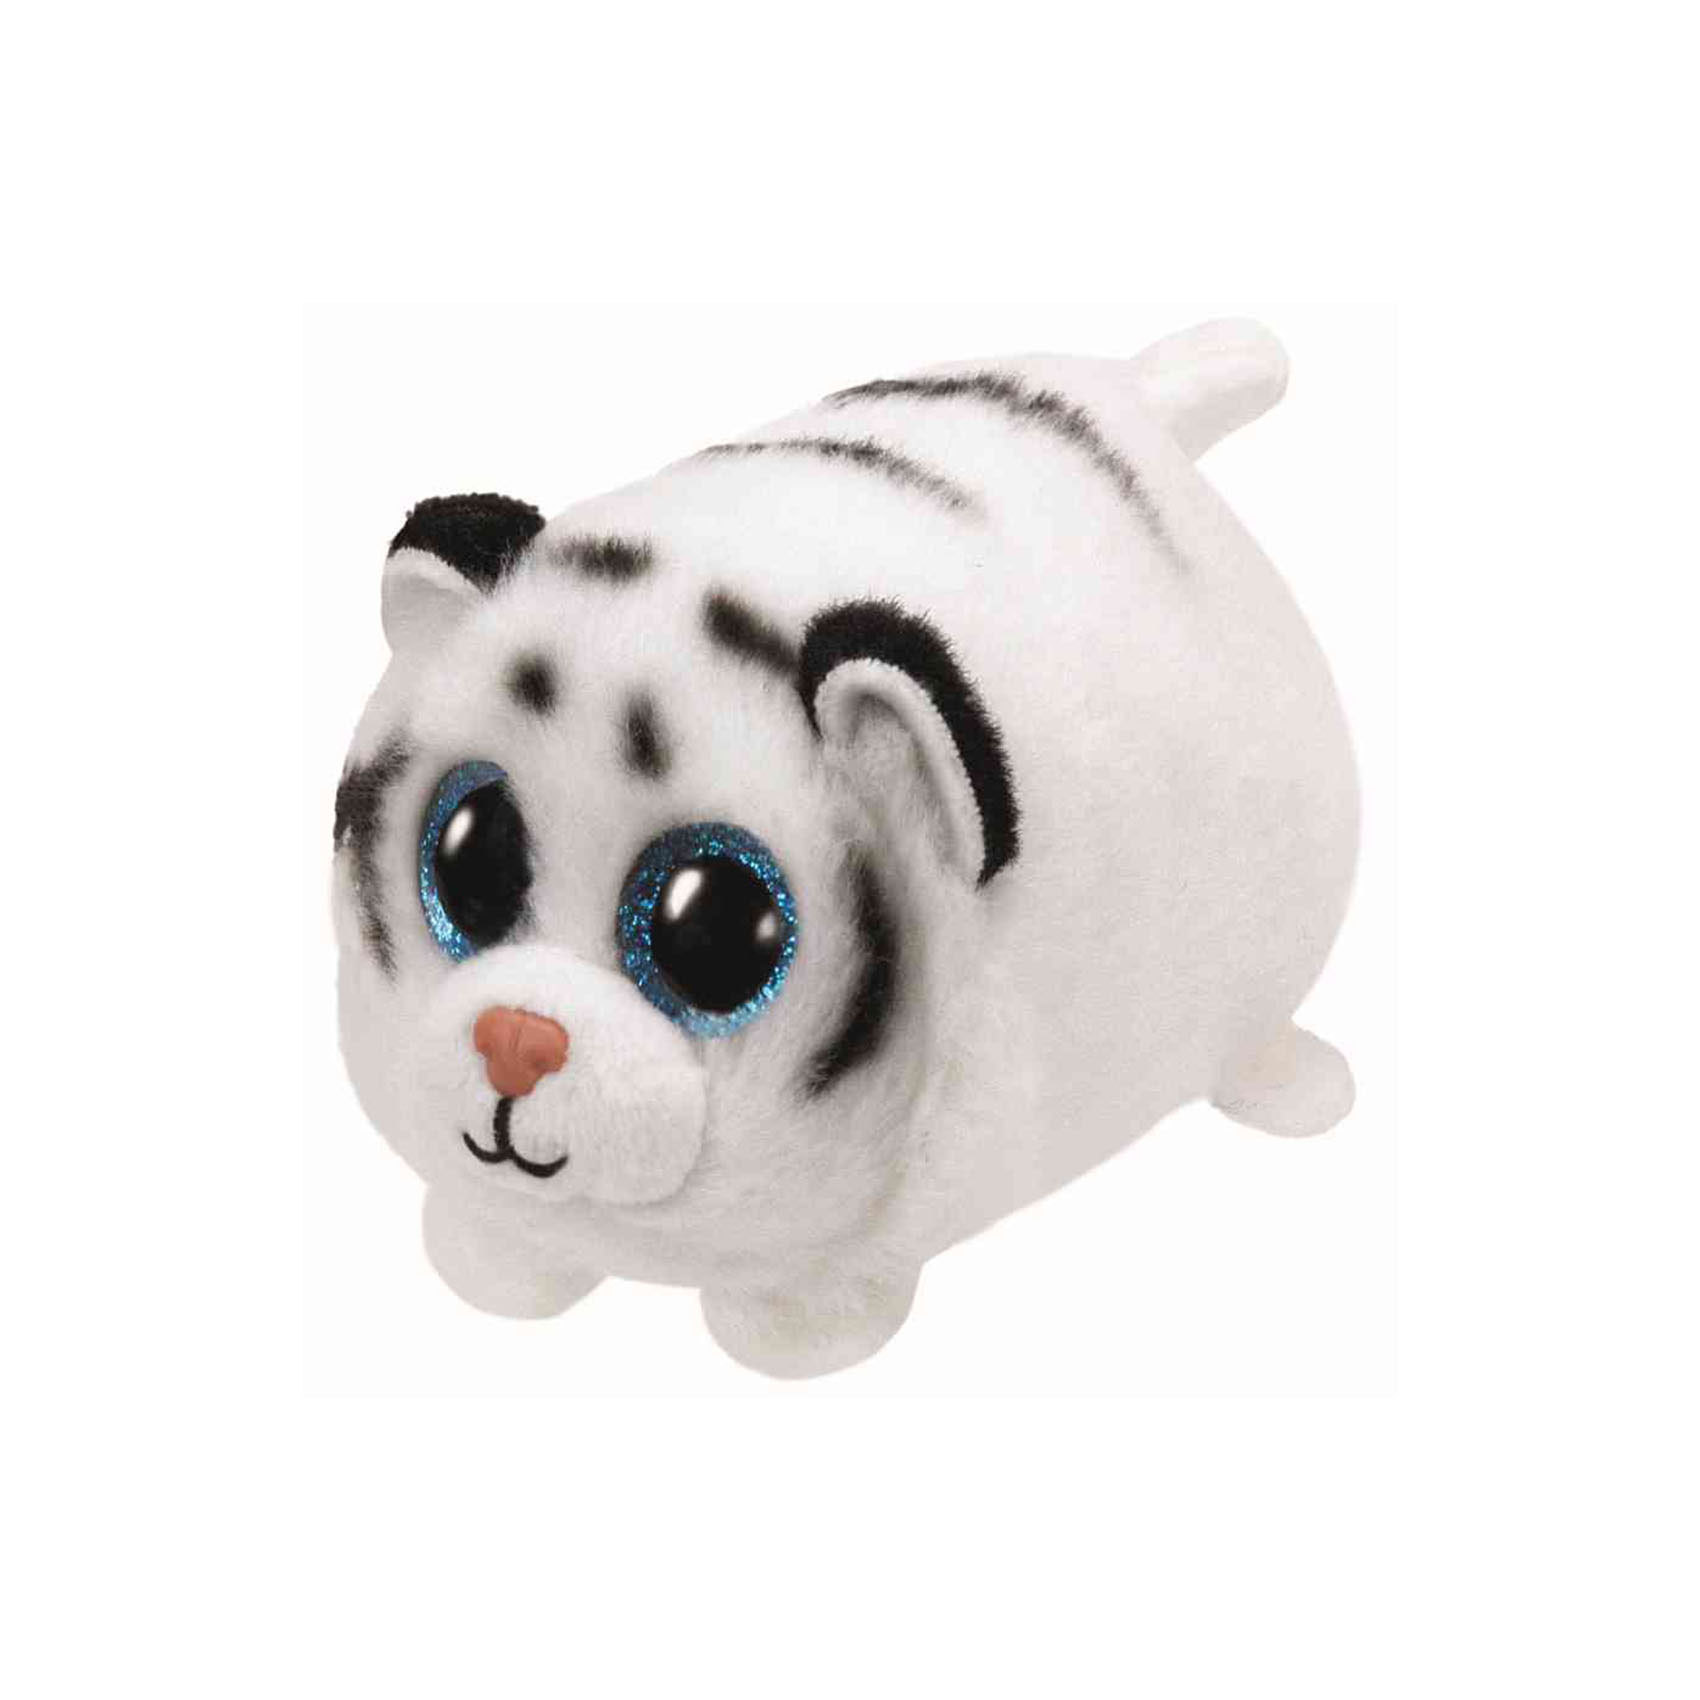 TEENY TYS TIGER ZACK WHT/BLK 2IN S3